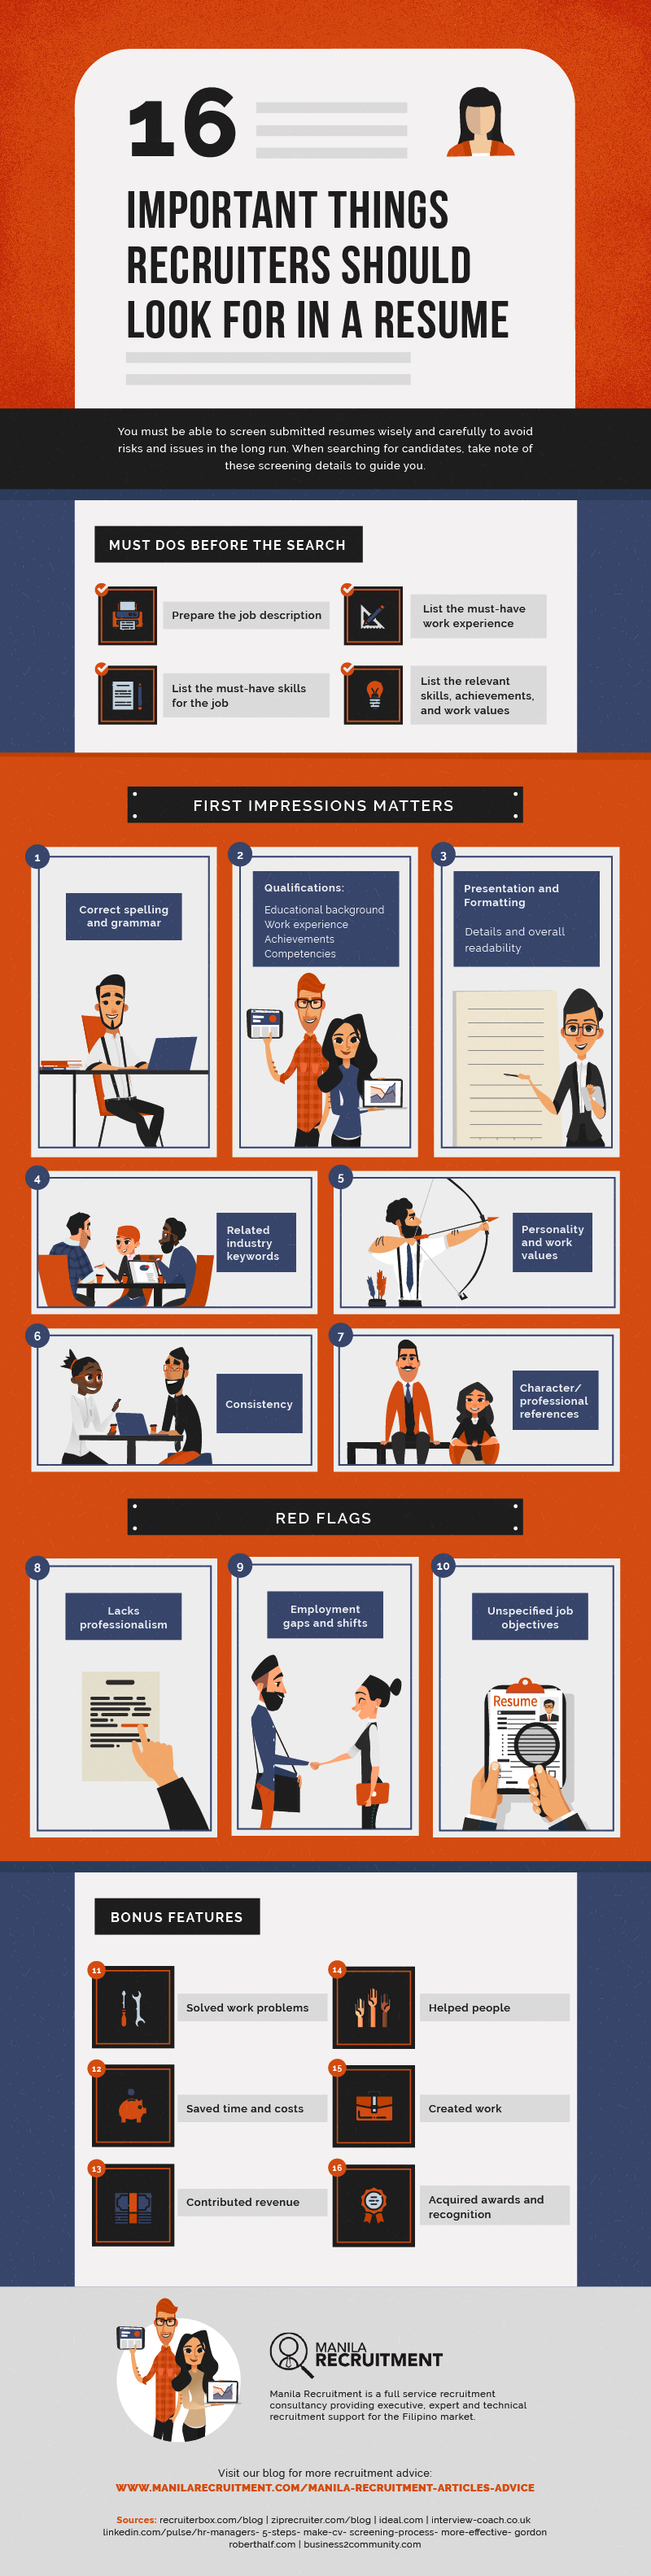 MR-What To Look For In A Resume-infographic